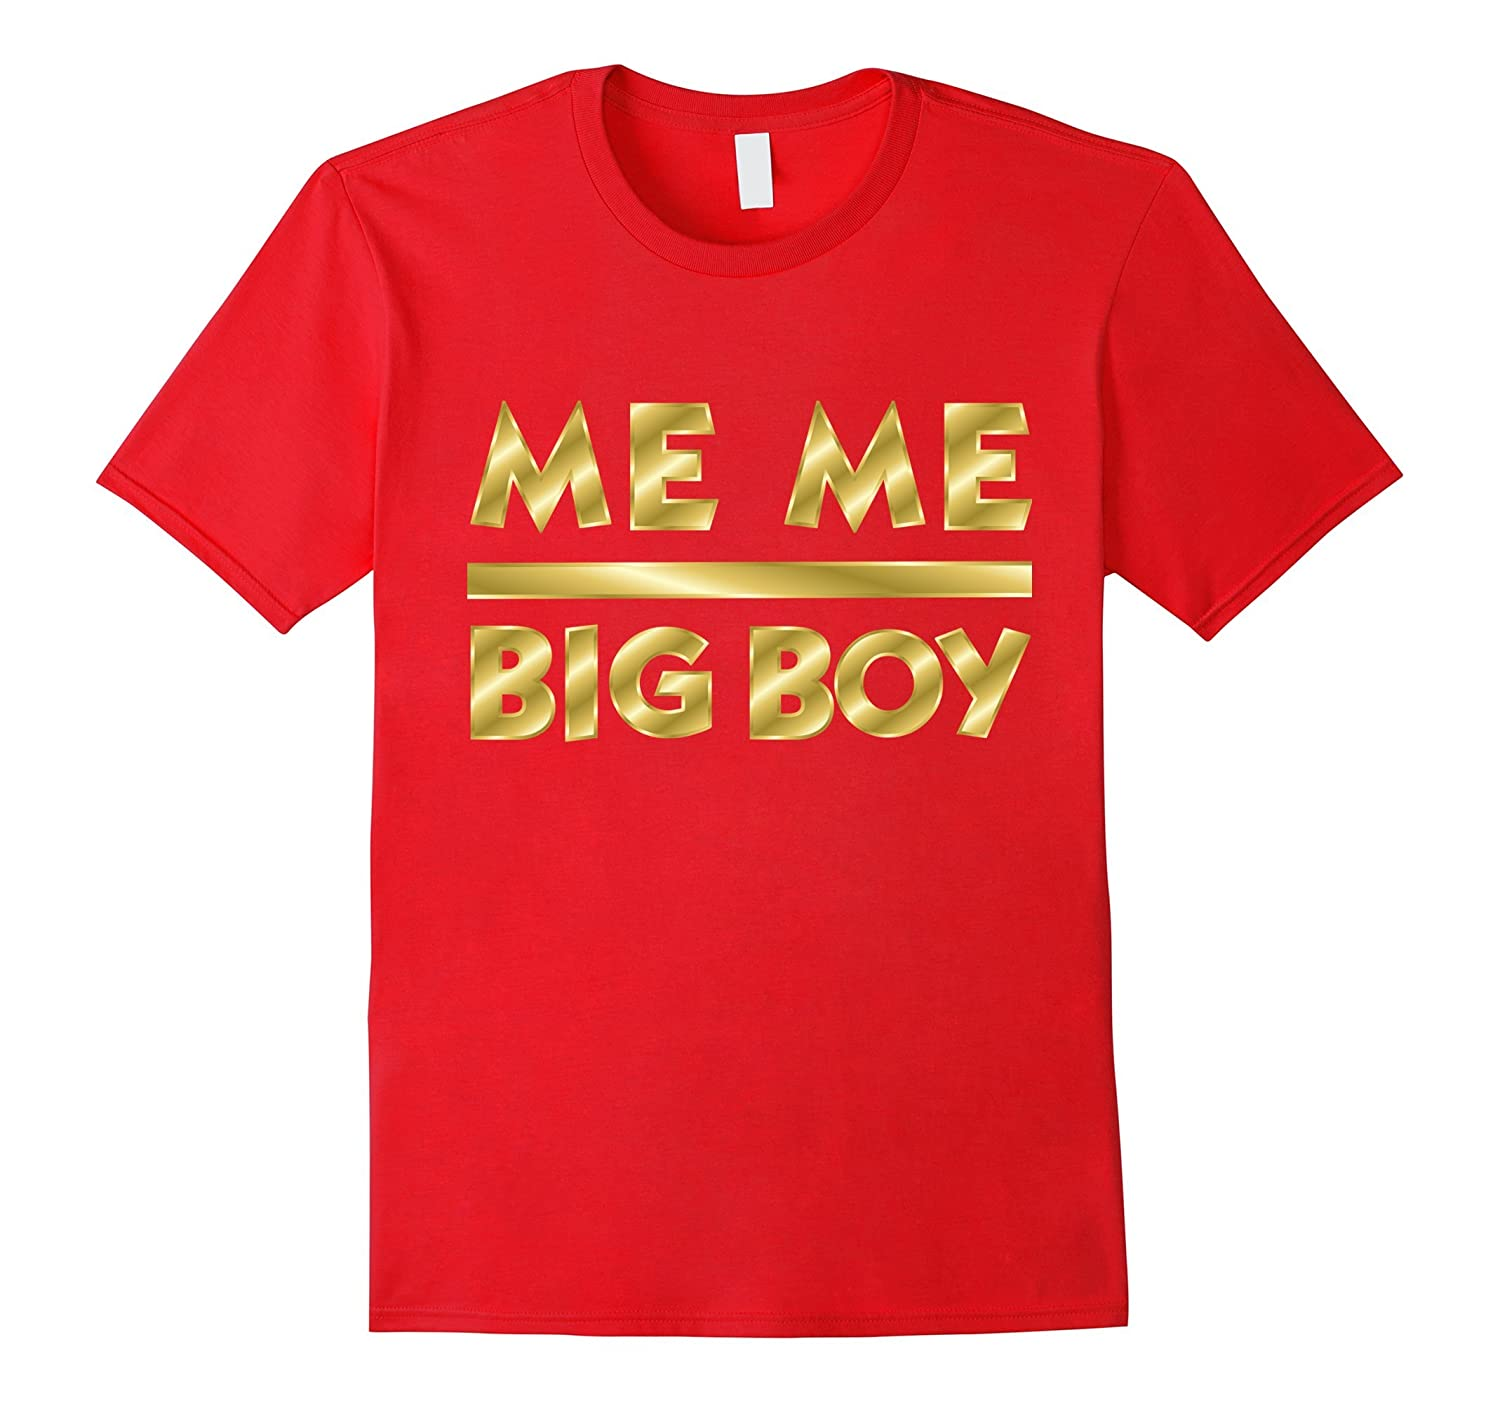 meme big boy t shirt me me big boy gold tshirt-CD